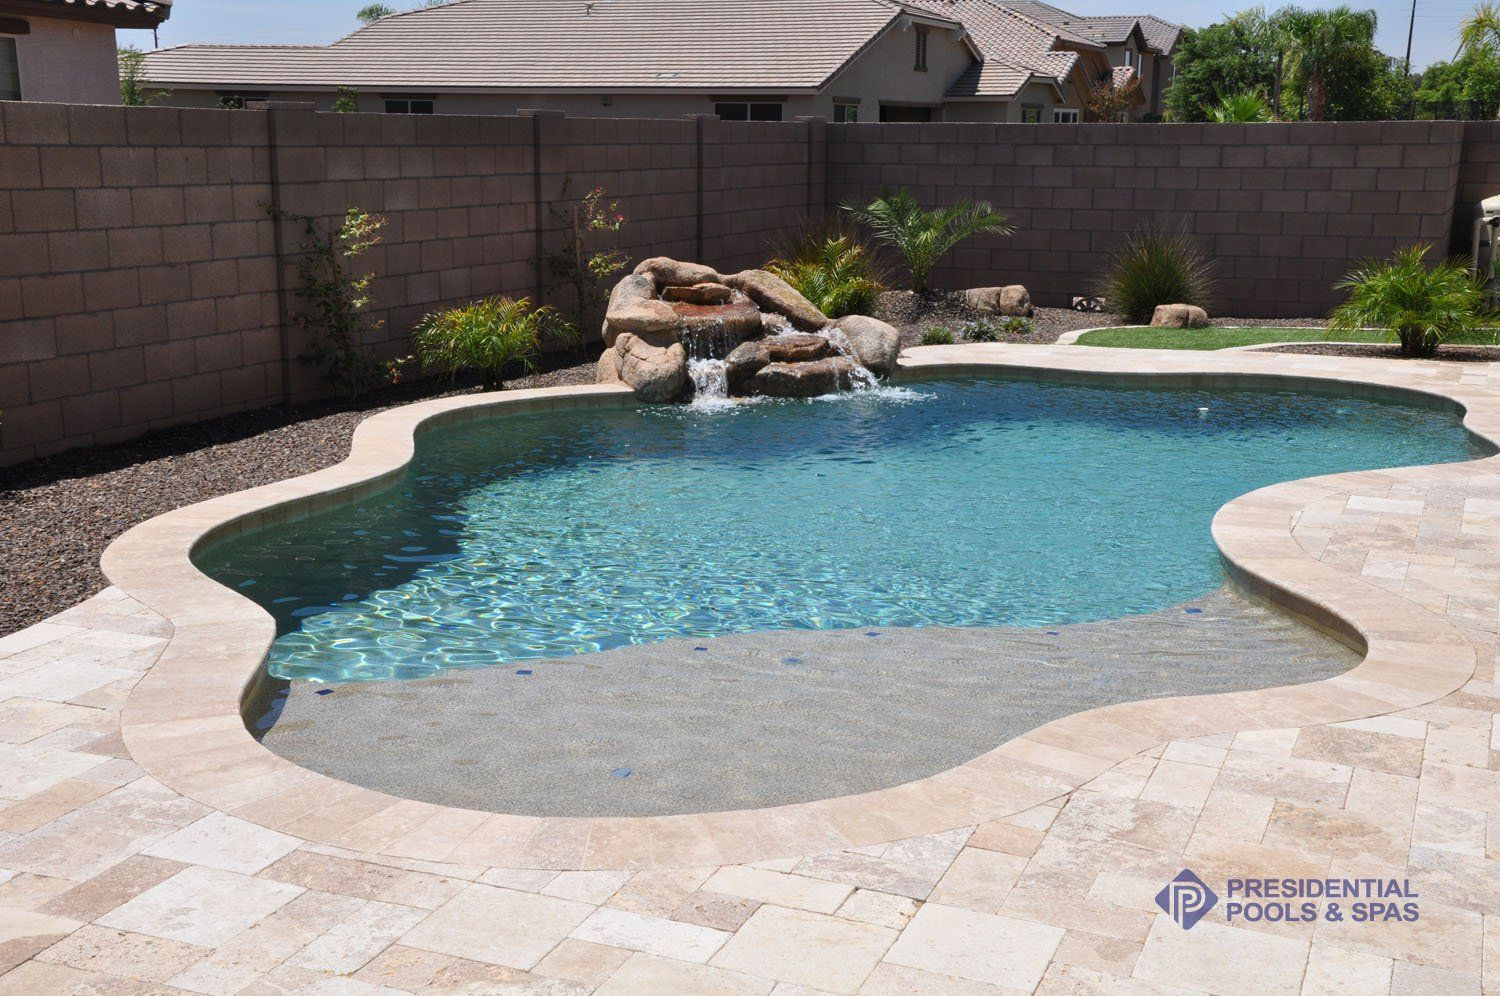 Simple and small pool with sand bar by presidential pools for Simple backyard pools